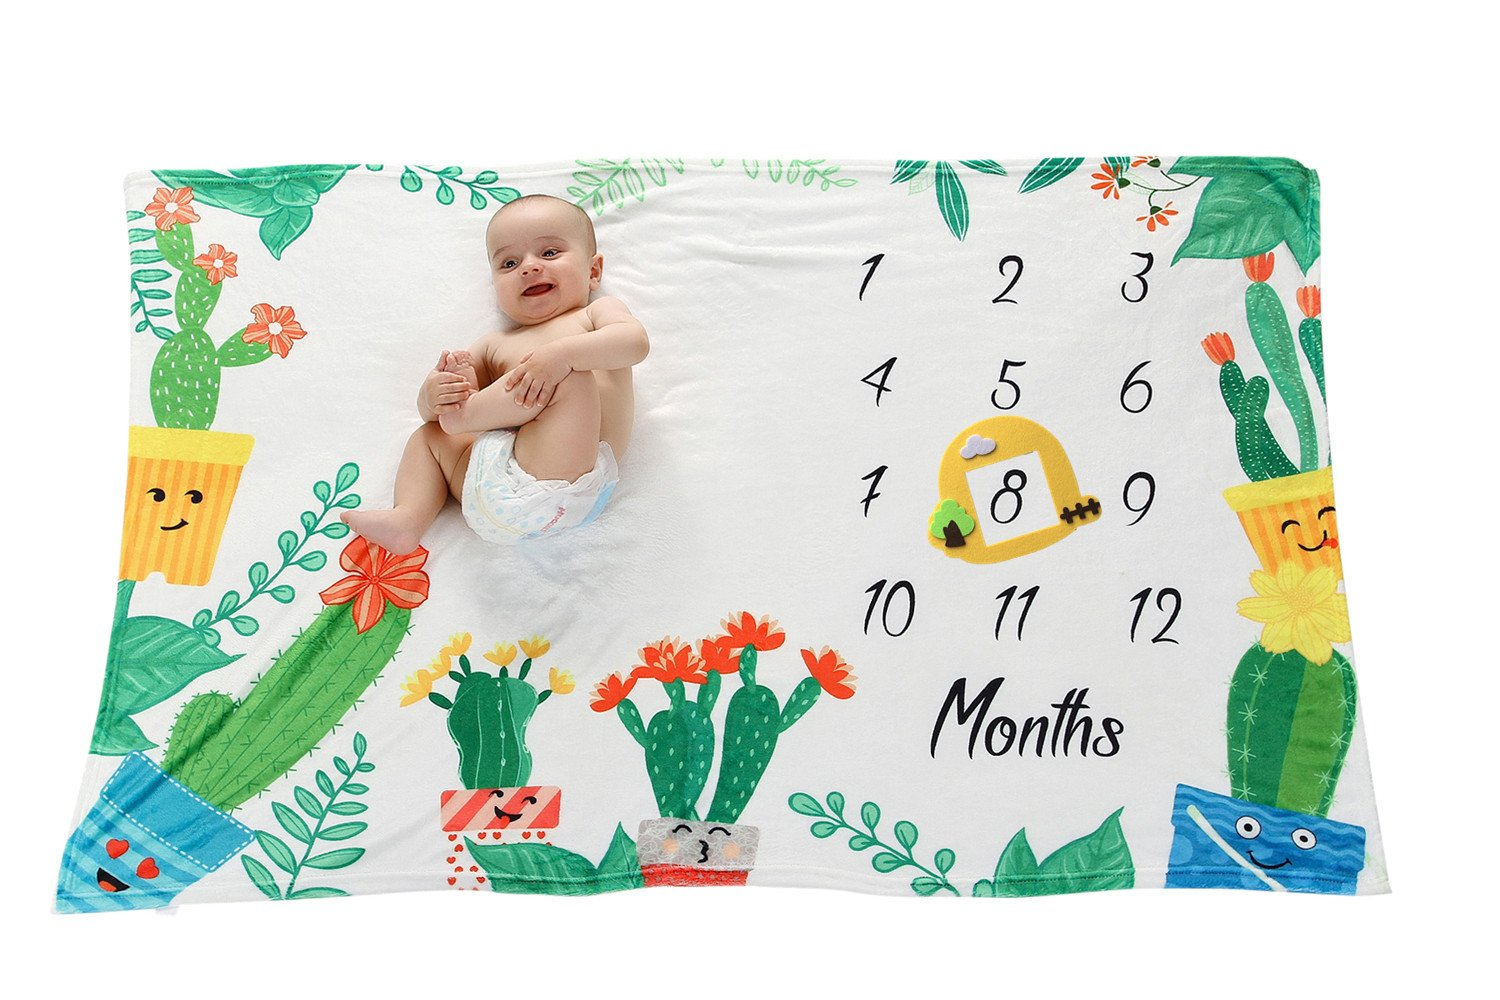 Premium Fleece Cactus Baby Milestone Blanket for Newborn Photo Props, Monthly Growth Tracker, Baby Shower Gift for Baby Boy & Girl KASU